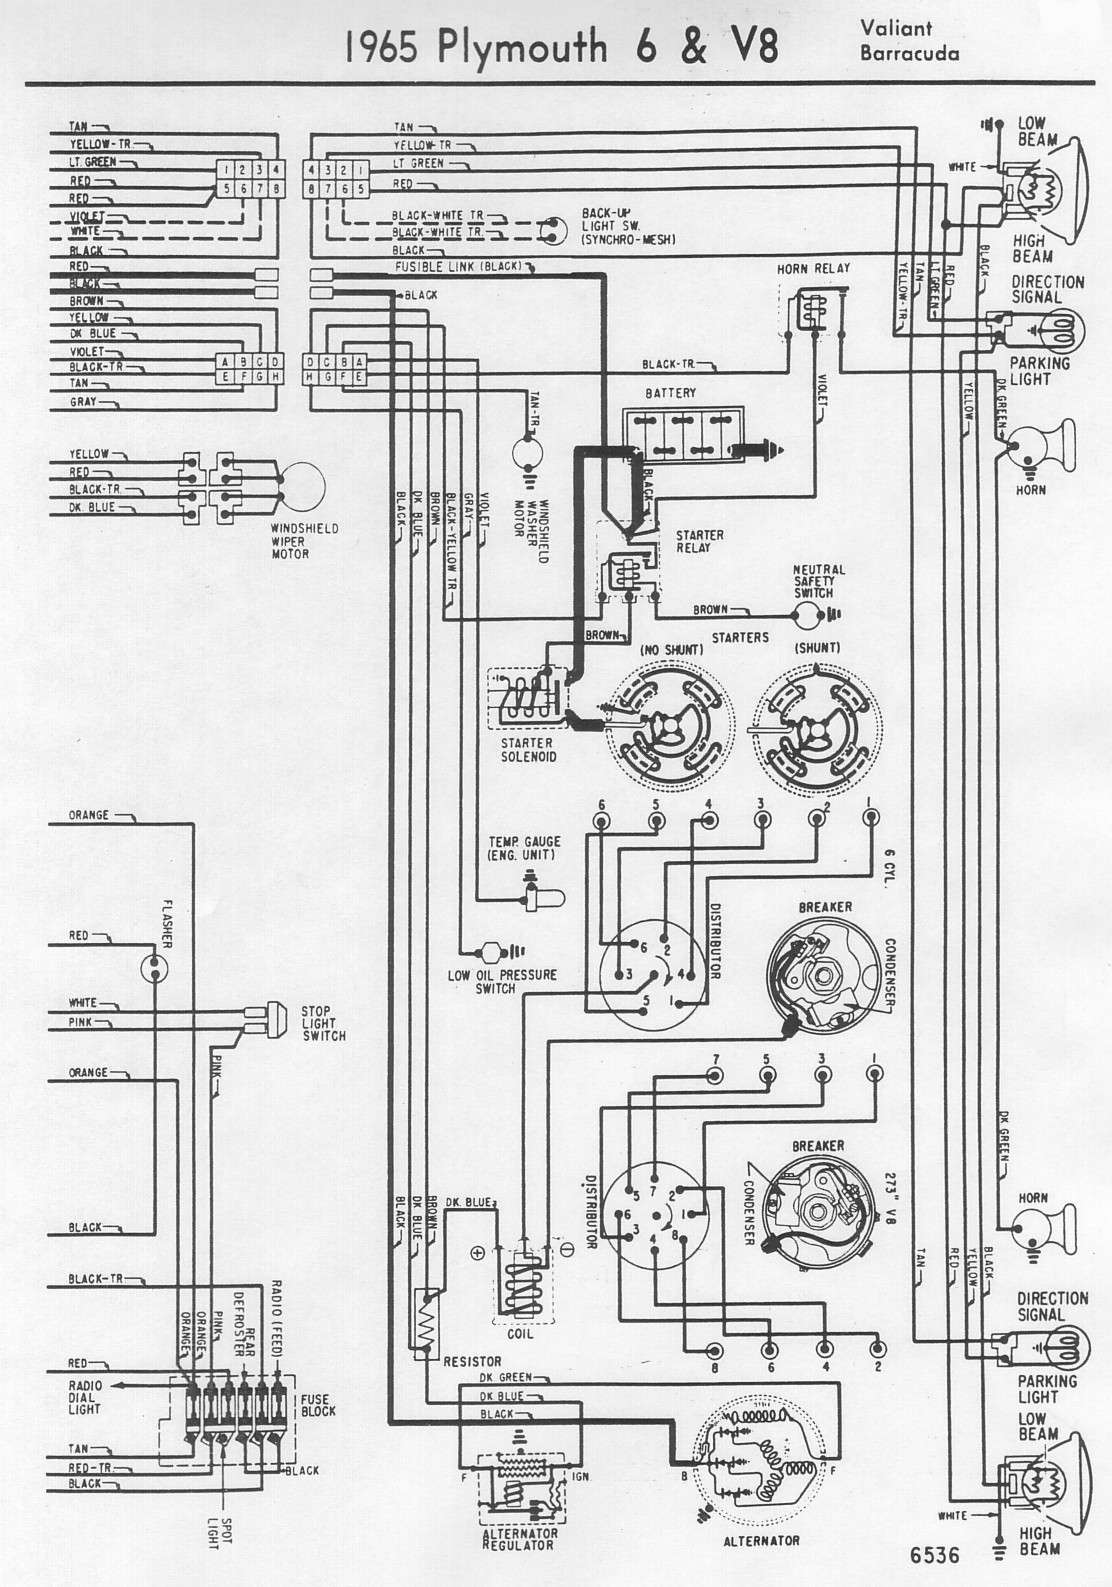 hight resolution of plymouth road runner engine bay diagram wiring diagram row plymouth road runner engine bay diagram